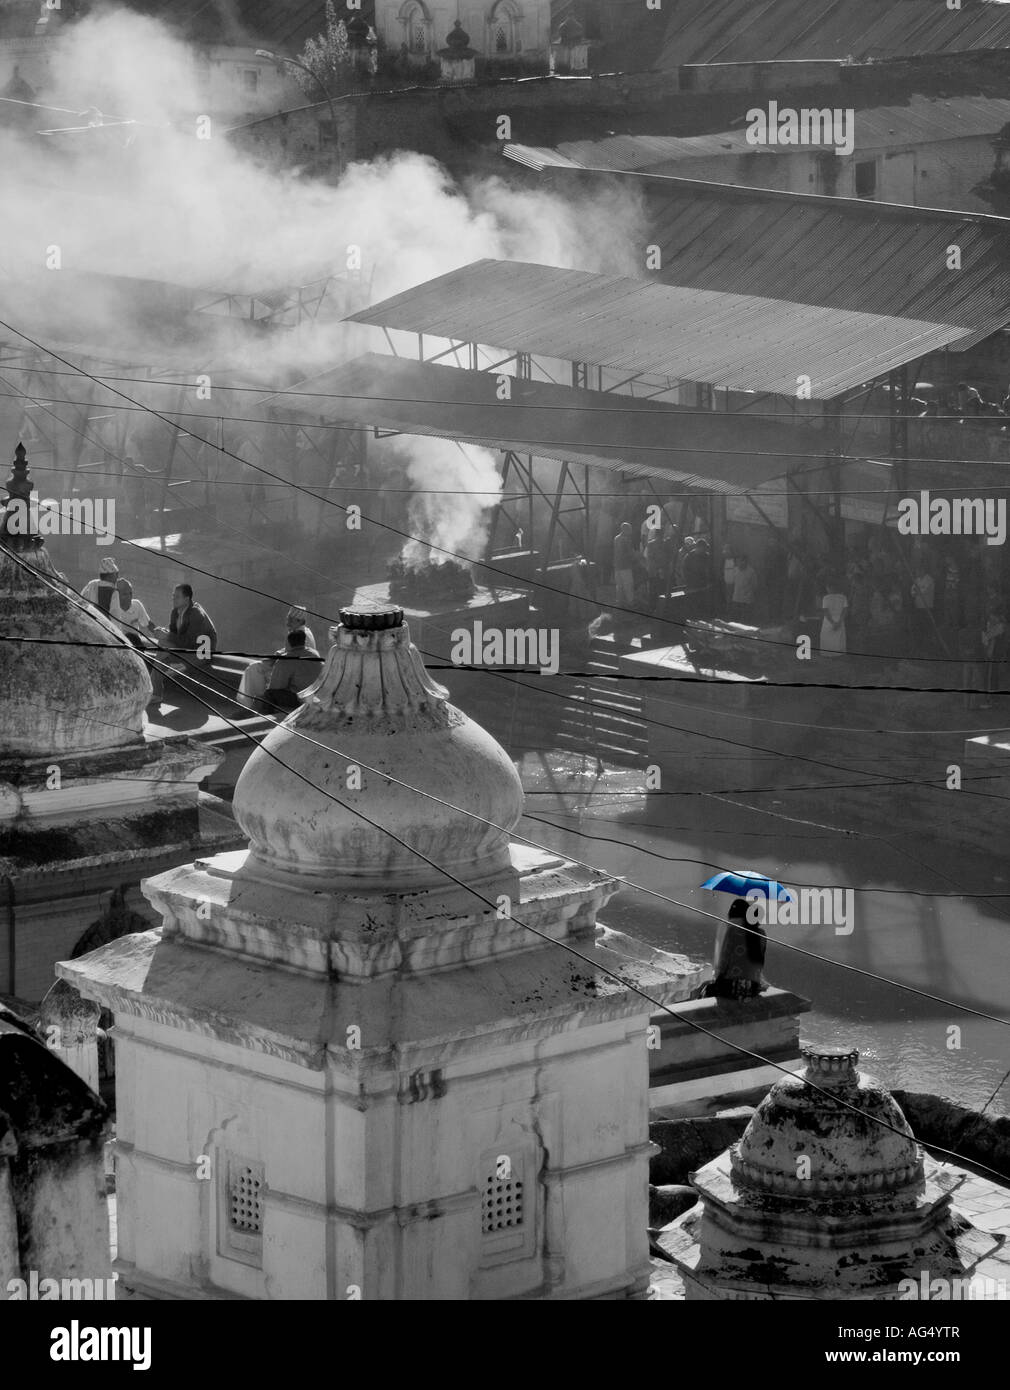 View over Pashpatinath, Kathmandu with cremations and blue umbrella - Stock Image